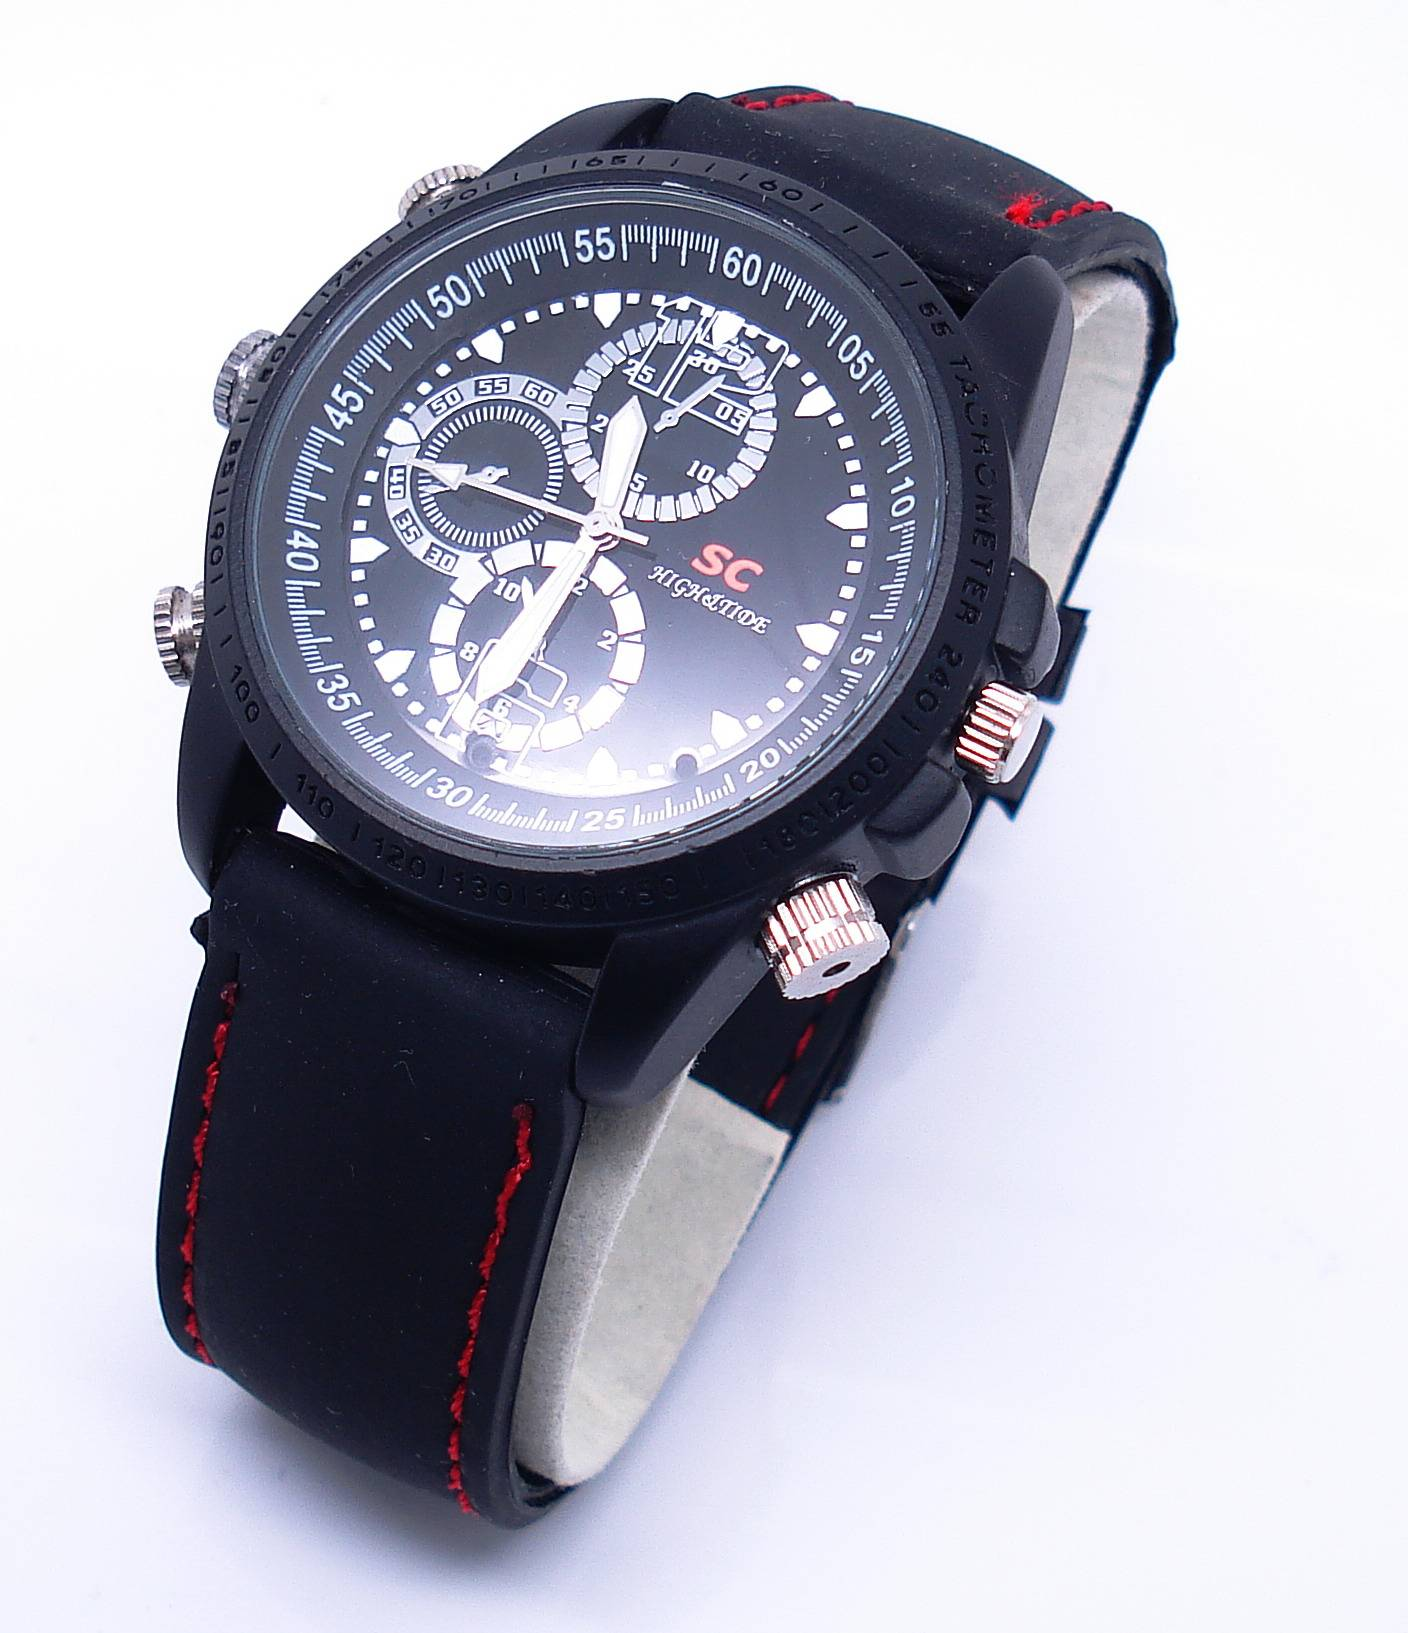 waterproof spy watch hidden pinhole camera sports spy camera watch mini DVR